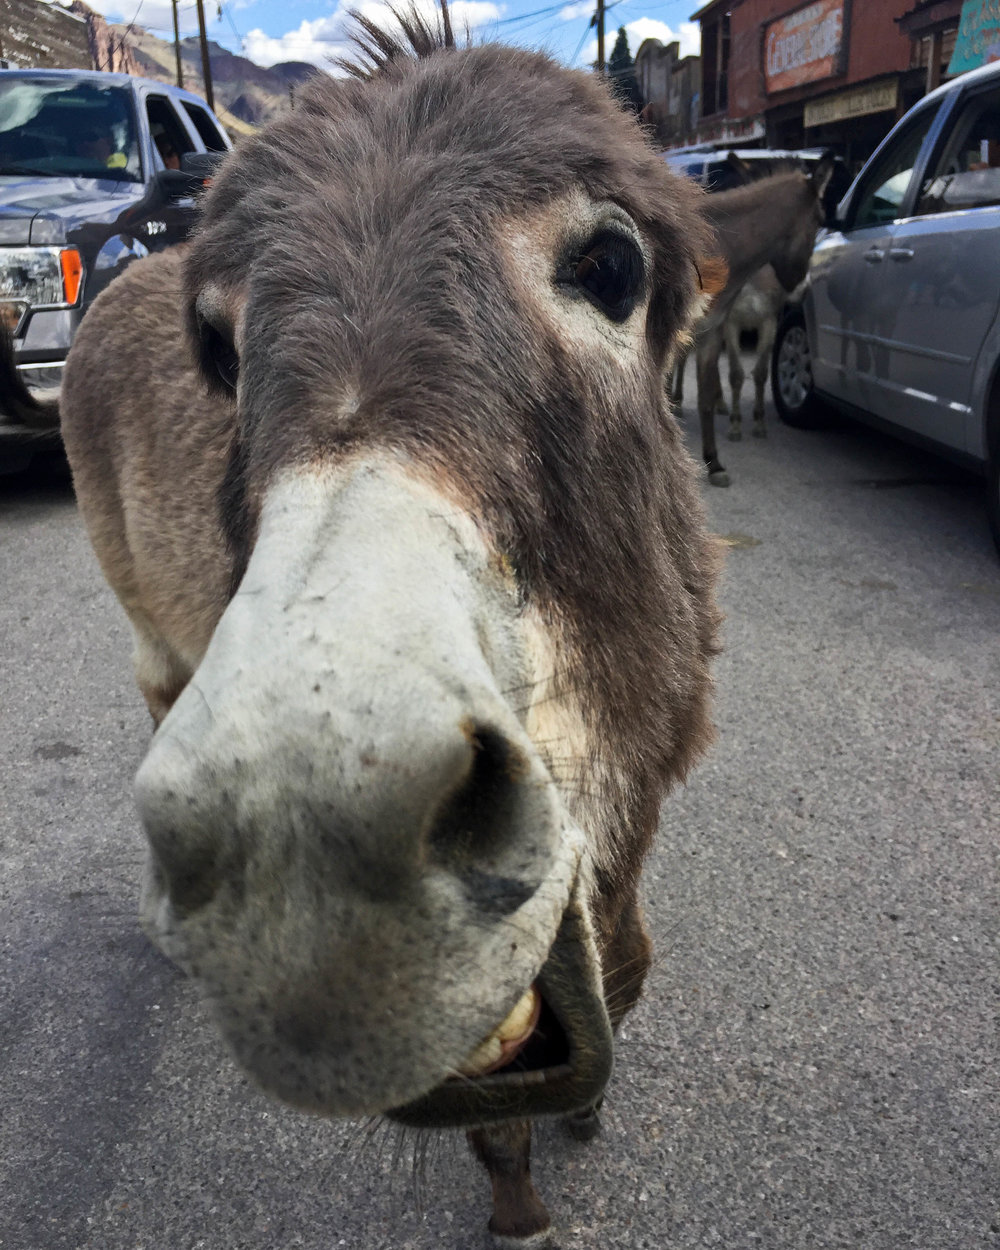 A donkey in Oatman, Arizona, reacts grumpily to having its photograph taken. 2017.